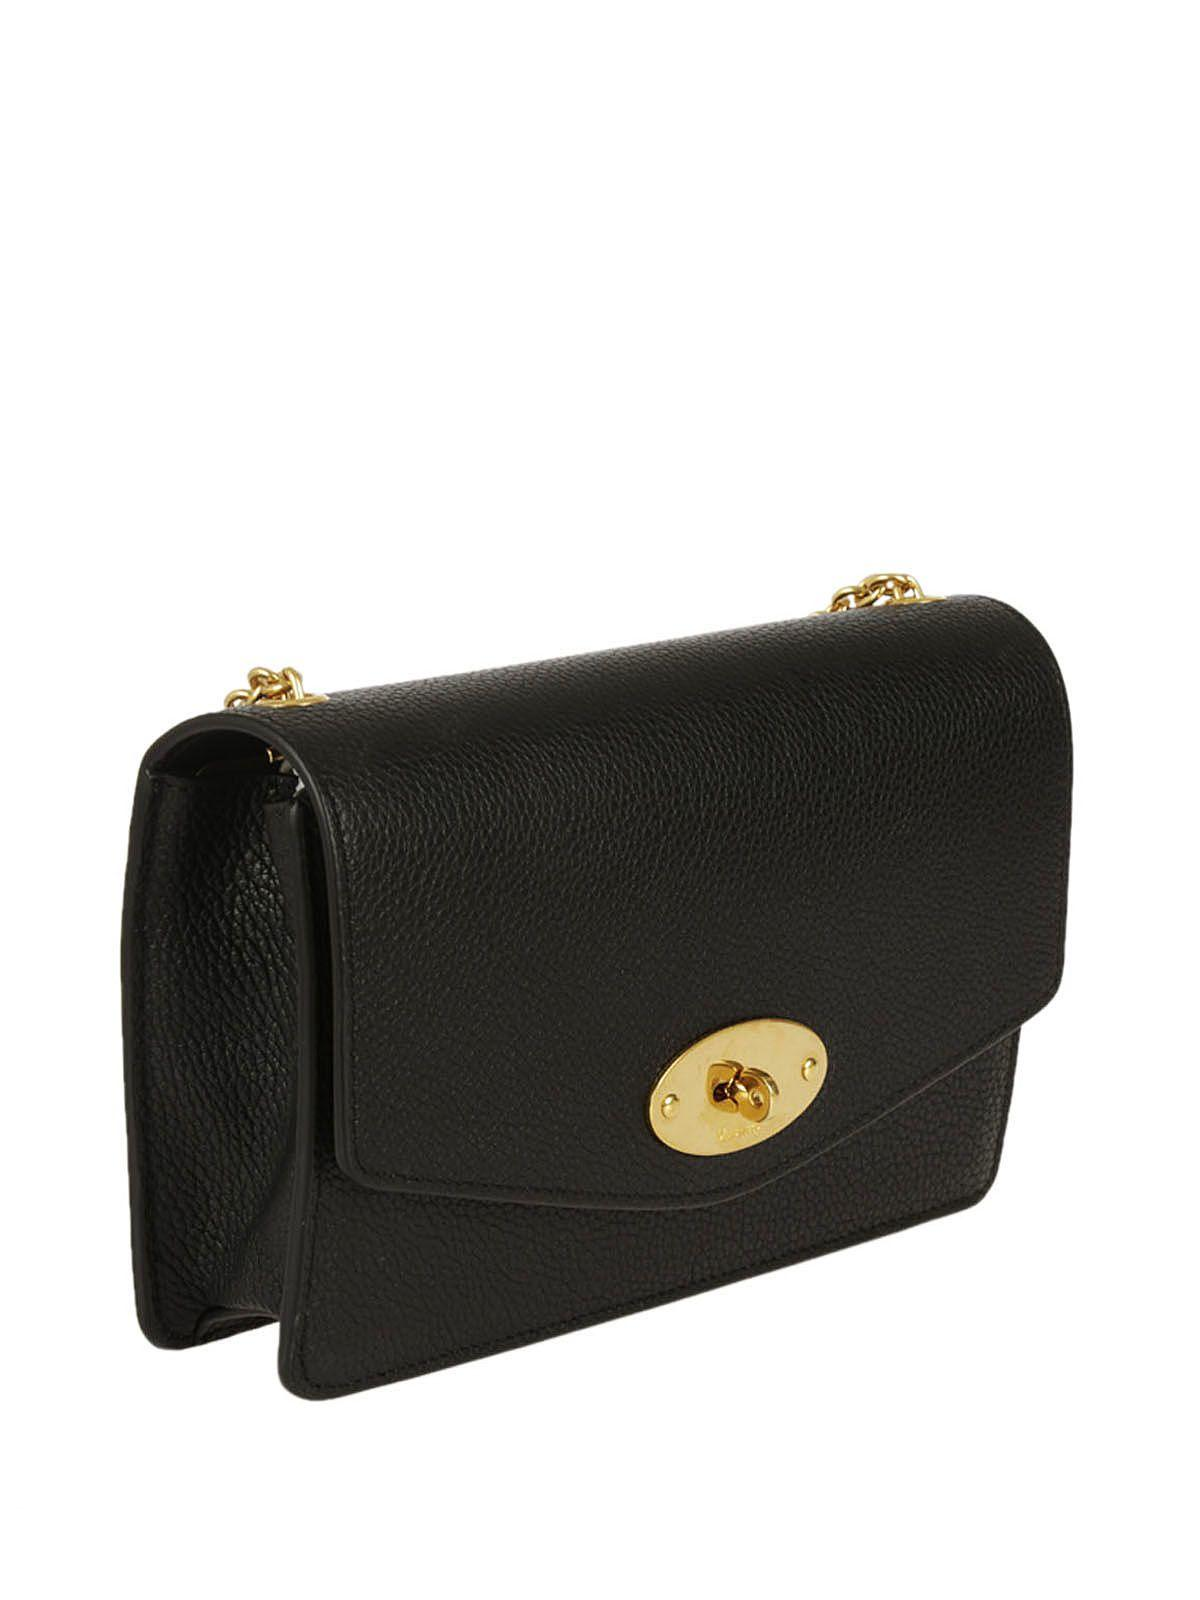 a168843b41 Mulberry Darley Small Textured-Leather Shoulder Bag In Black